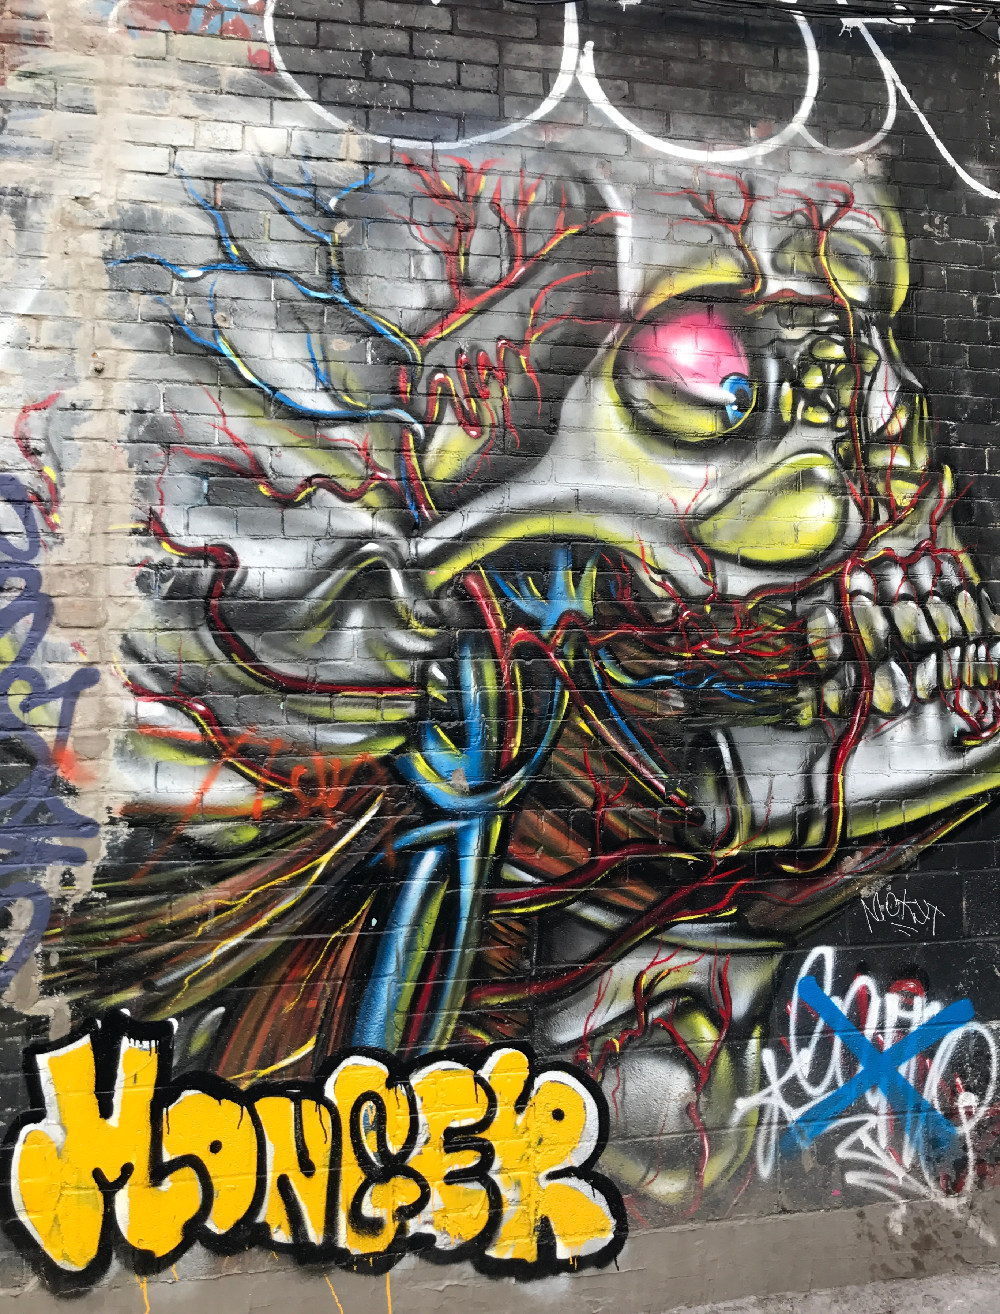 Graffiti of a skull with blue veins and red arteries coming out of the side and top